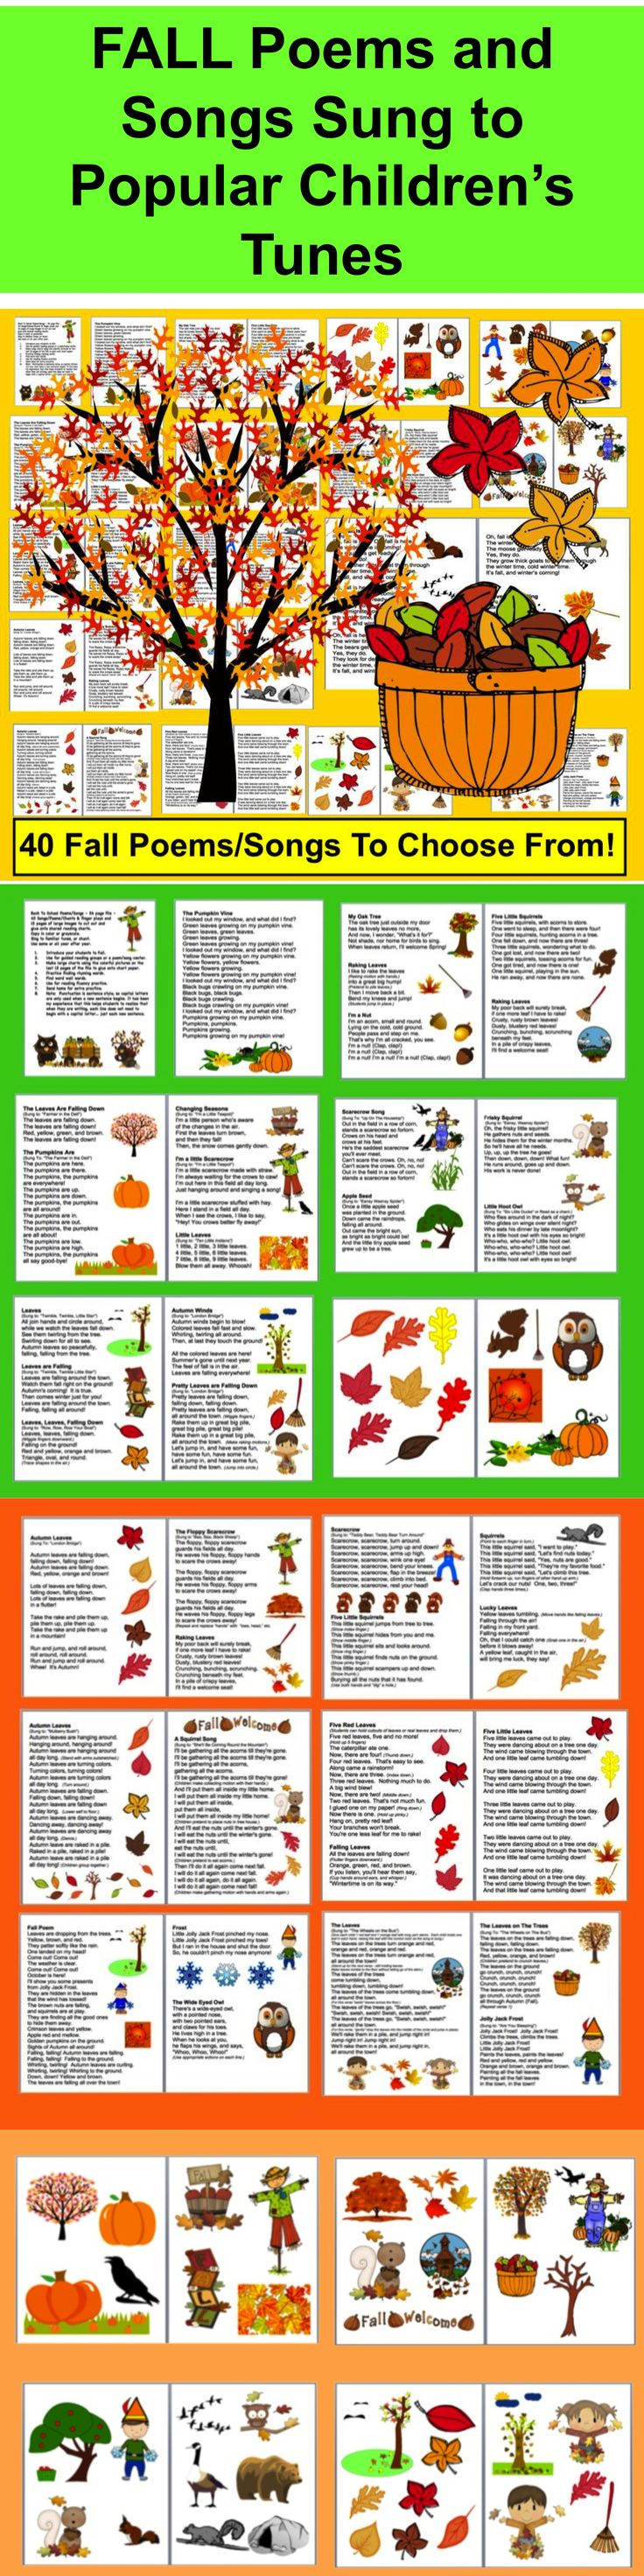 $ Fall Poems Songs, Chants and Finger Plays for Fall or Autumn Shared Reading or Fluency  ★36 page file ★40 Fall Poems/Songs/Chants and finger plays ★12 pages of large Fall images to cut out and  glue onto shared reading charts. ★Copy in color or grayscale.  ★Sing these fall poems to familiar tunes, or chant.  ★Use some or all year after year during the season of Fall.